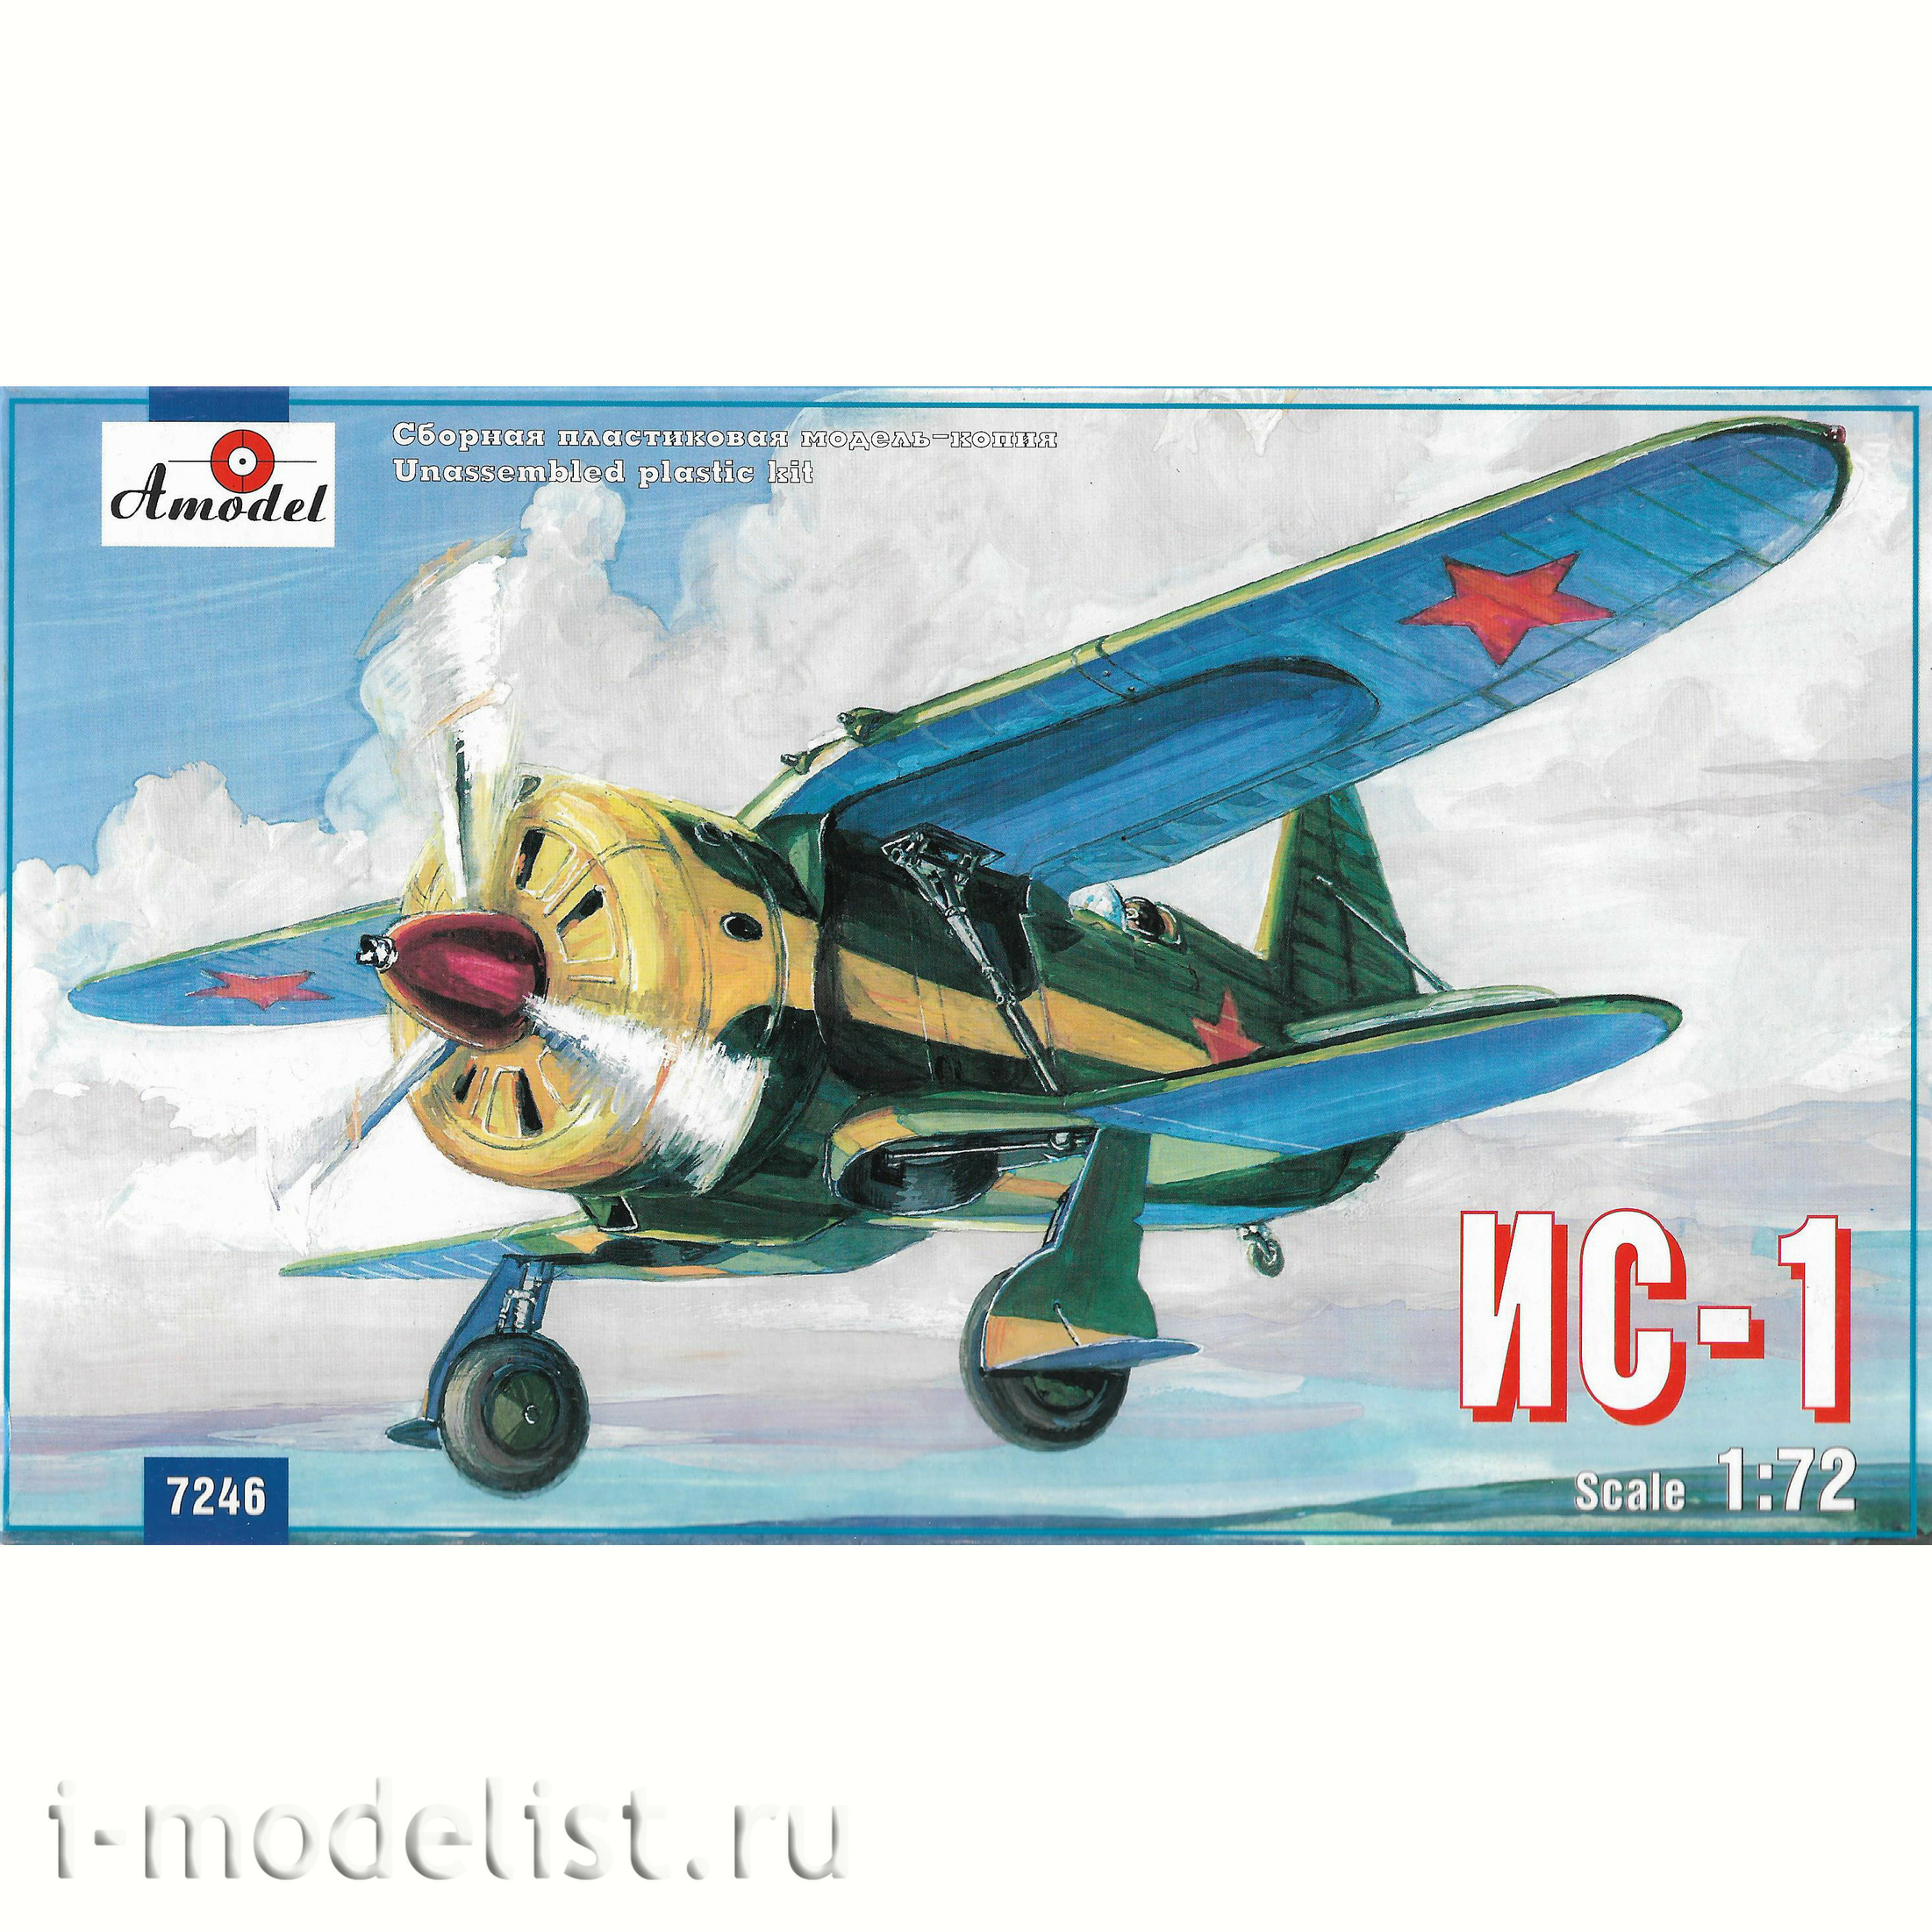 7246 Amodel 1/72 Aircraft is-1